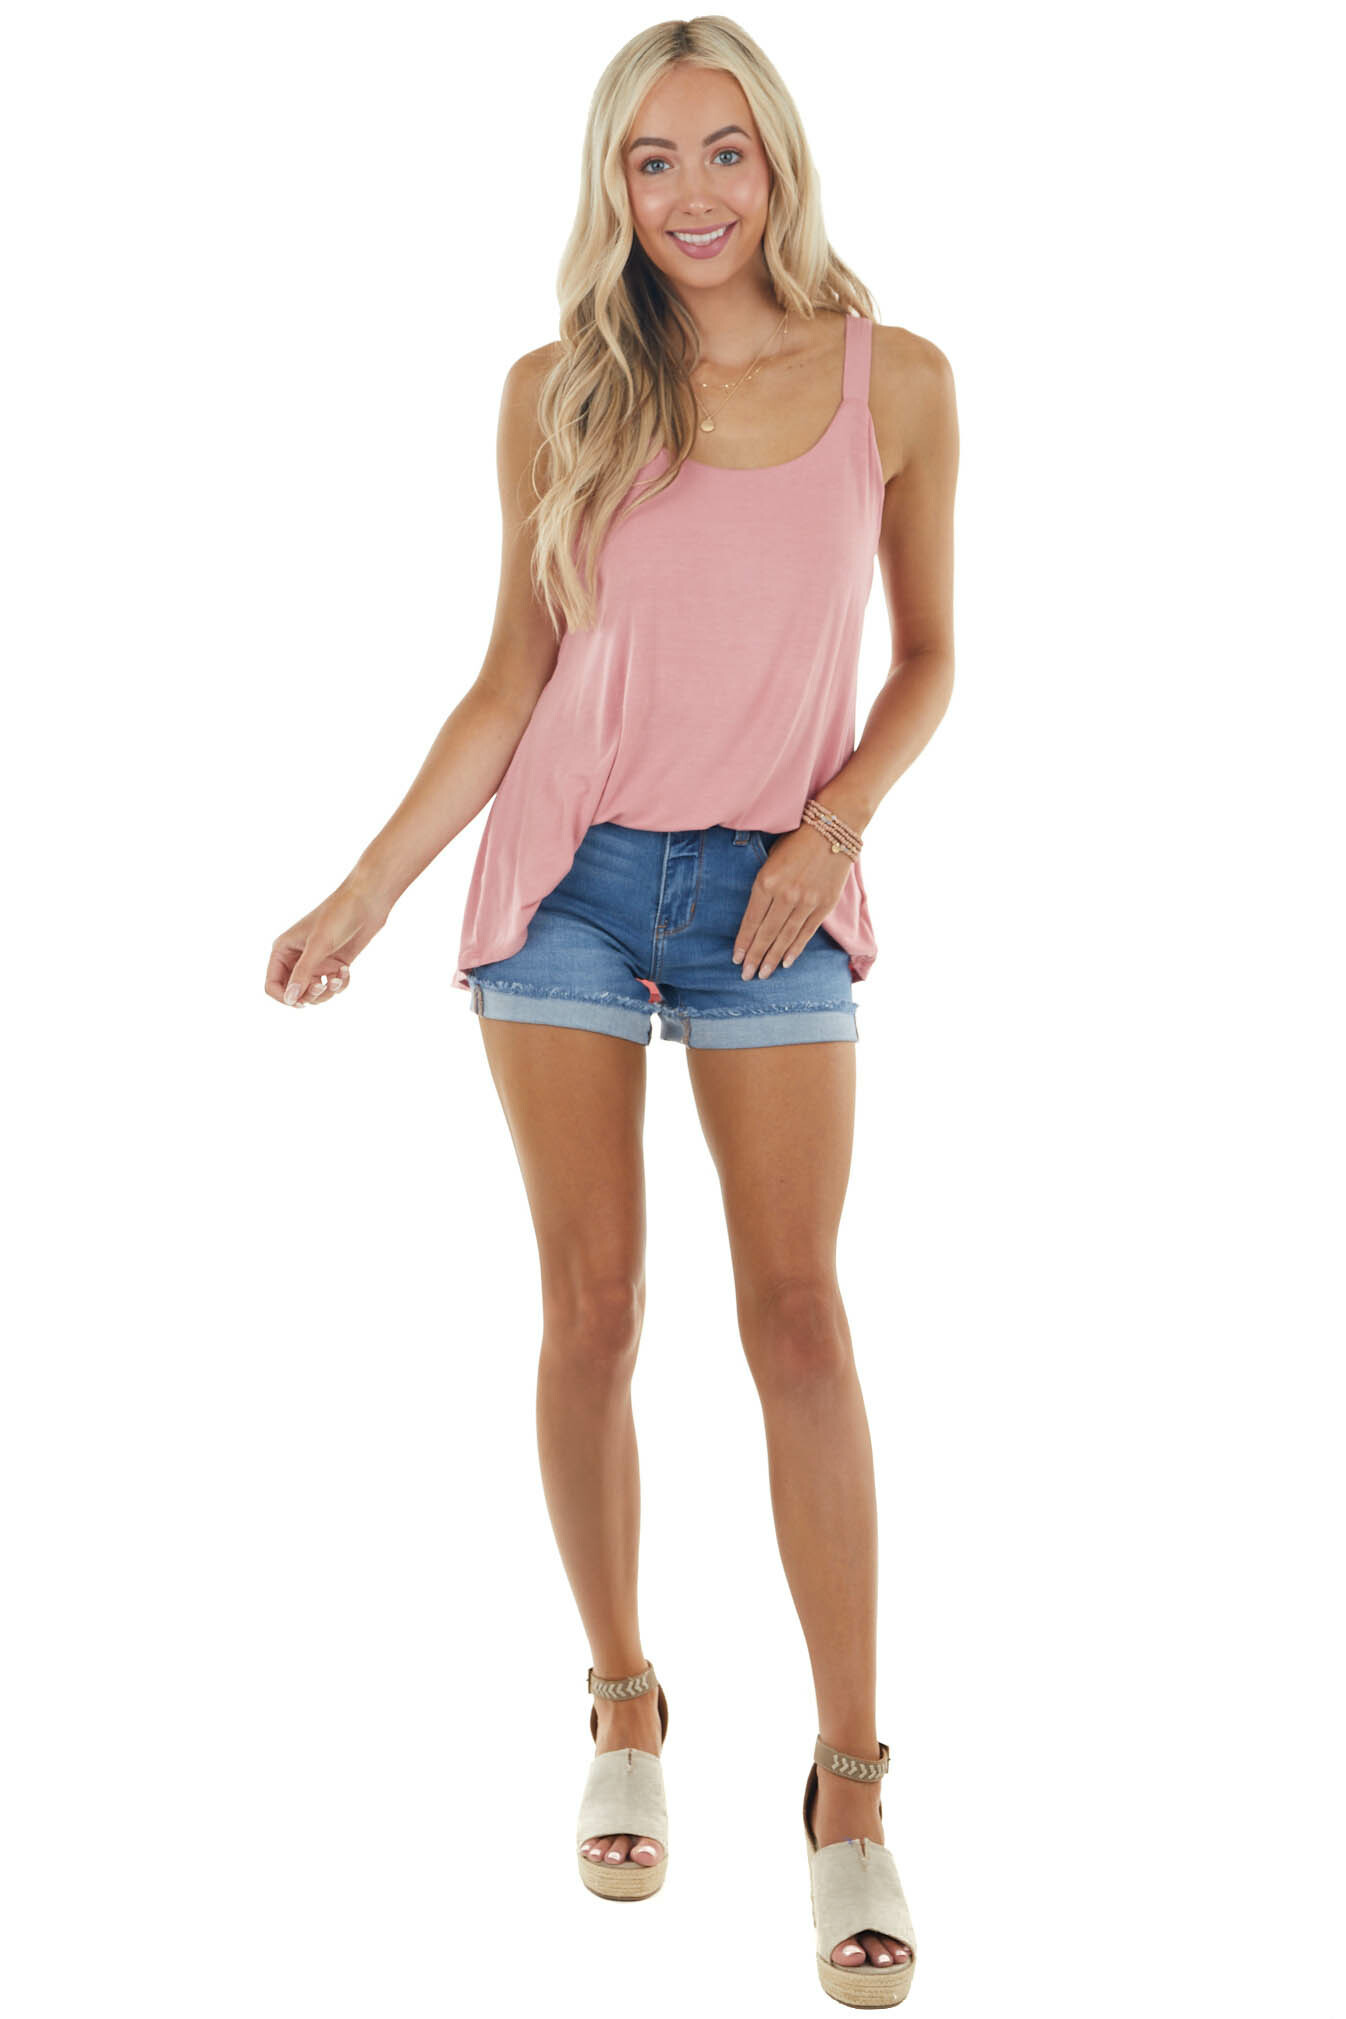 Dusty Blush Soft Stretchy Knit Tank Top with Thick Straps